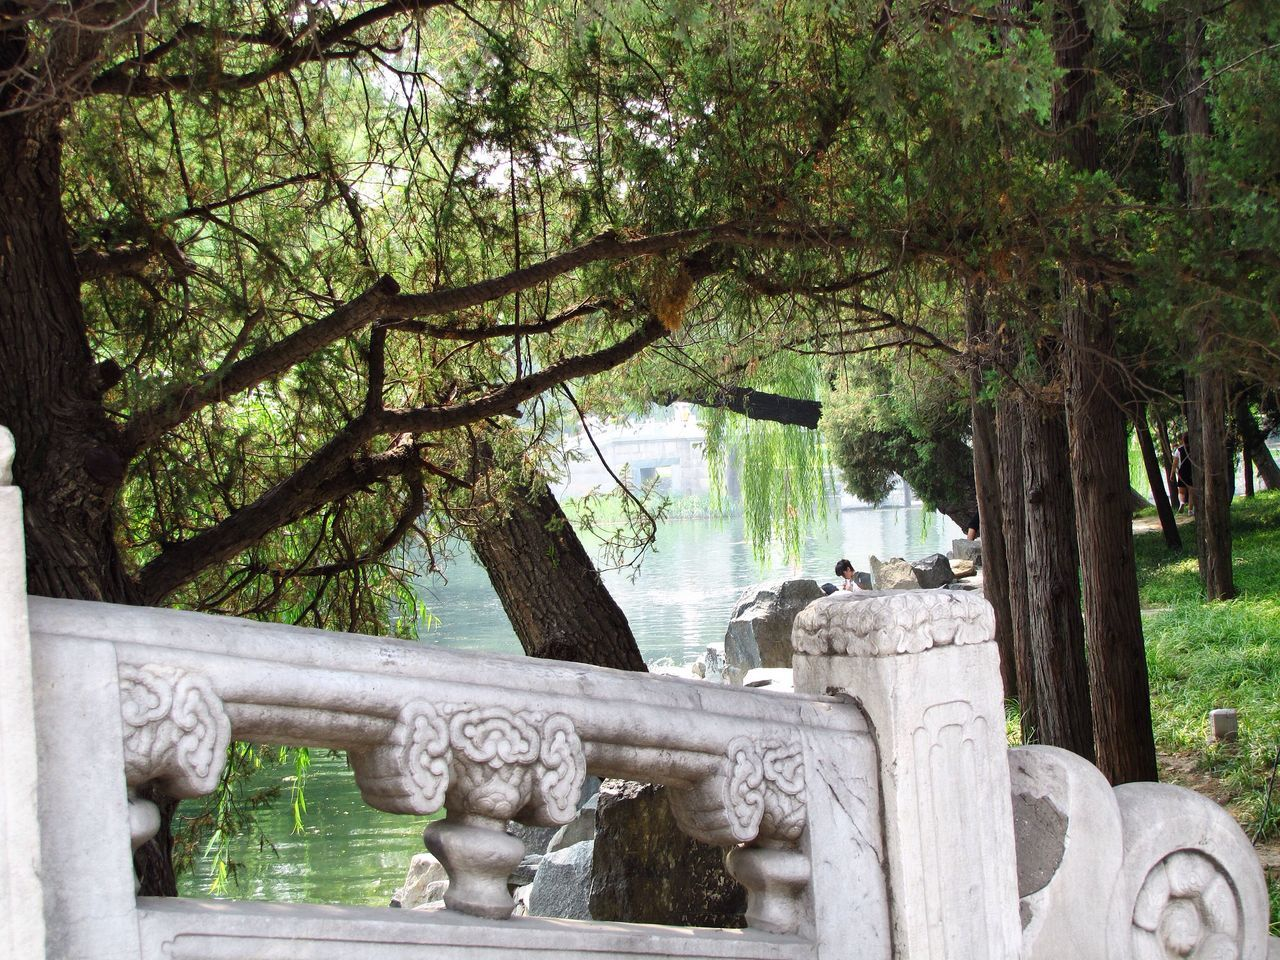 Architectural Column Art Day Grass Green Color Growth Mammal Nature No People Outdoors Park Plant Sky Tranquility Travel Destinations Tree Tree Trunk Water Nature's Diversities Old Summer Palace China Beijing Feel The Journey Original Experiences